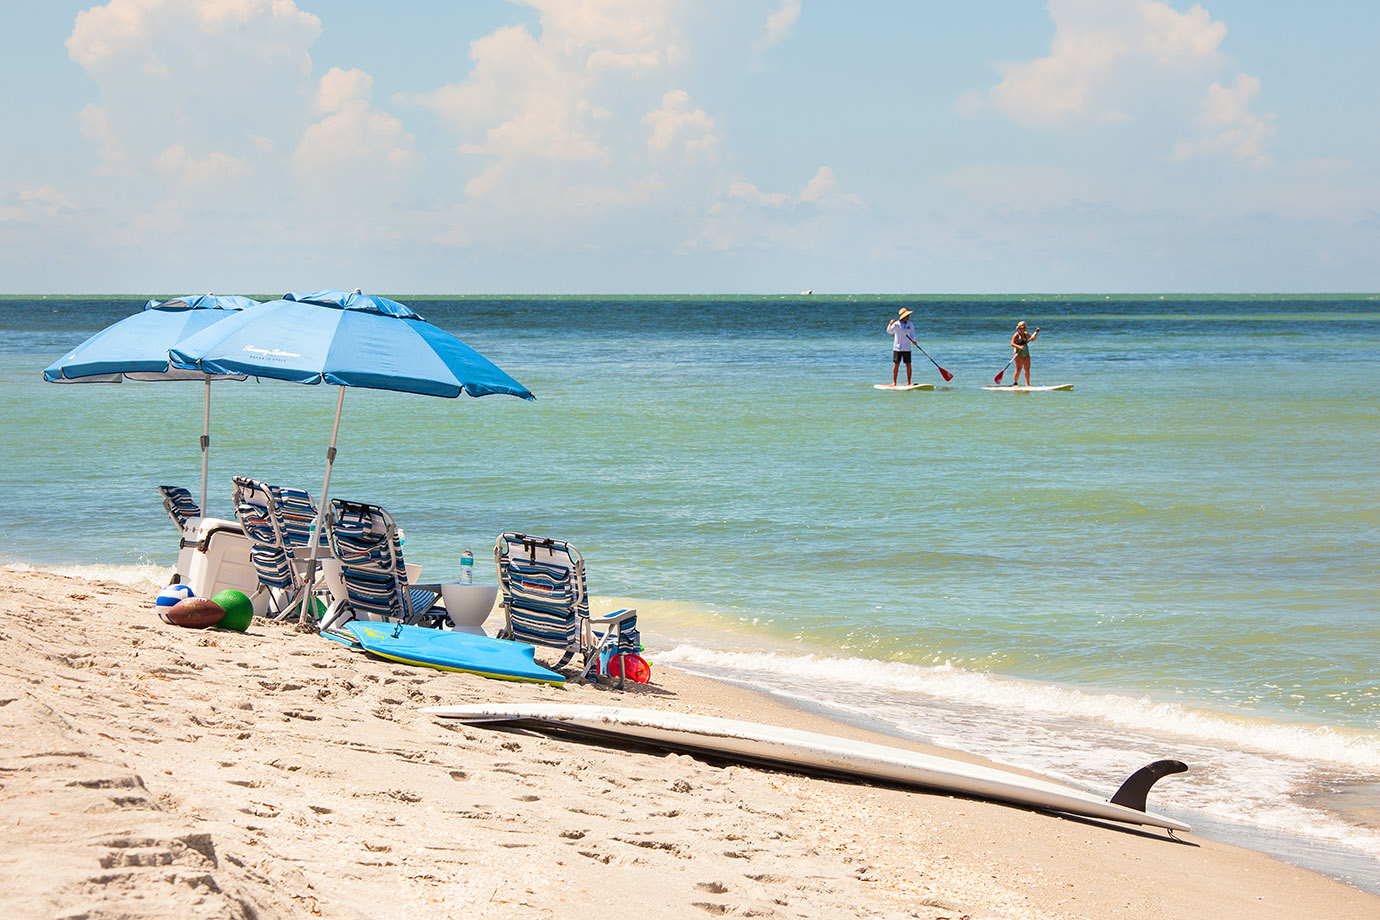 Shore line in Captiva Island, FL with five beach chairs and two umbrellas white two people paddle board in the ocean in the distance